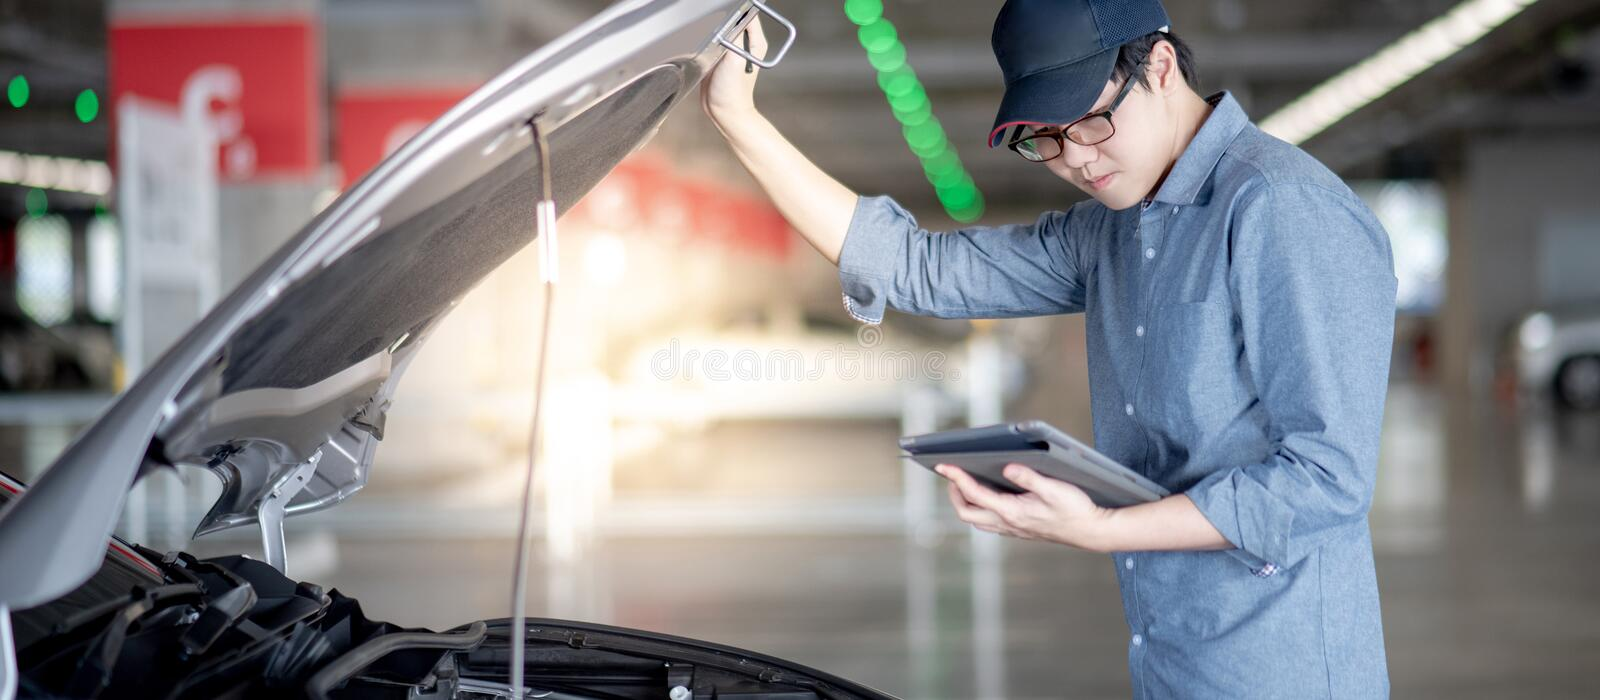 Asian auto mechanic checking the car using tablet. Asian auto mechanic holding digital tablet checking car engine under the hood in auto service garage royalty free stock photos